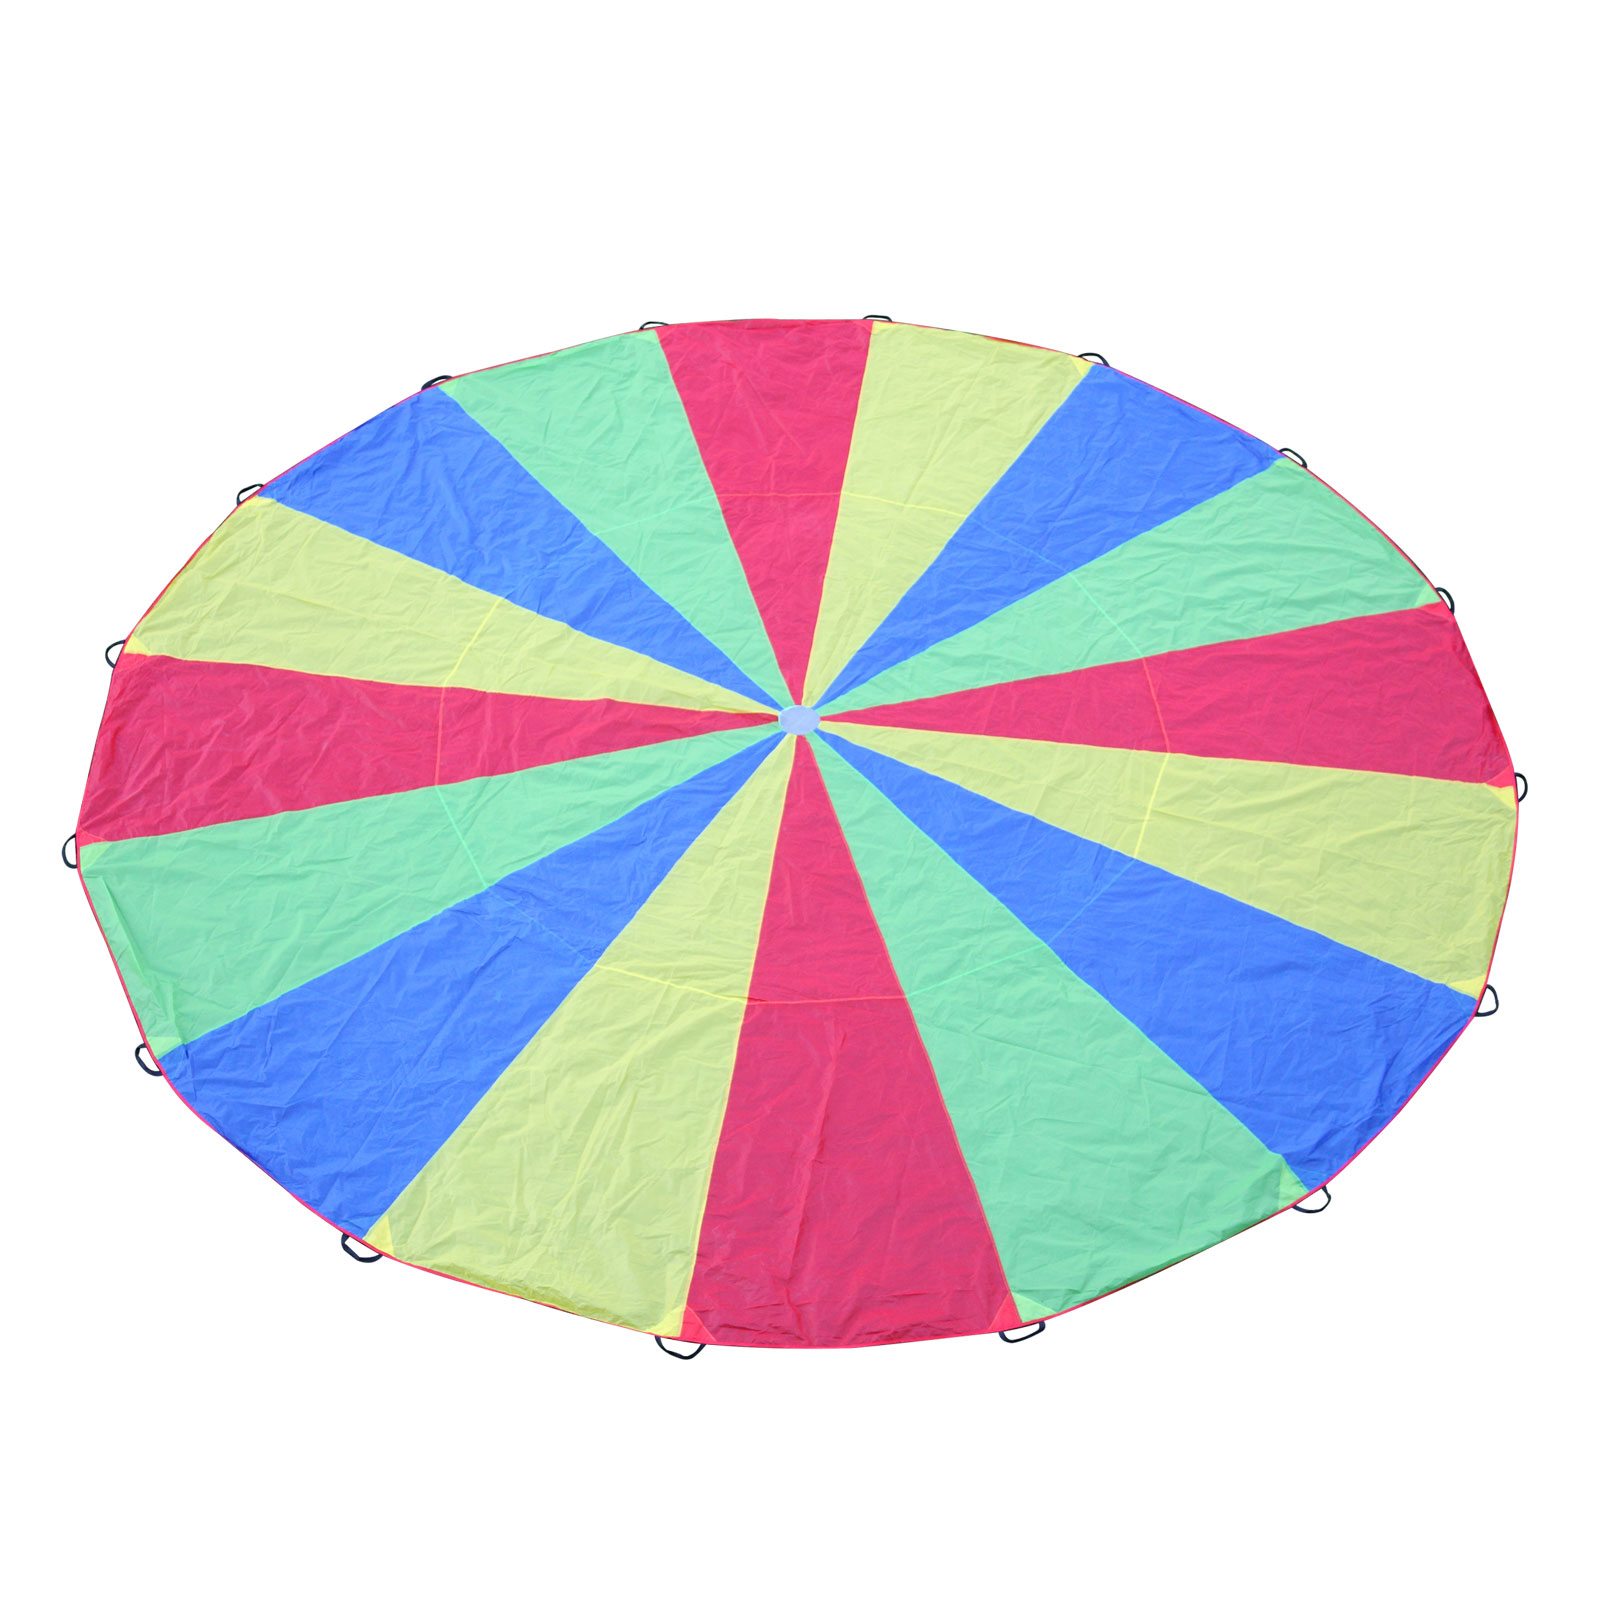 kids play parachute 6m large children rainbow outdoor game